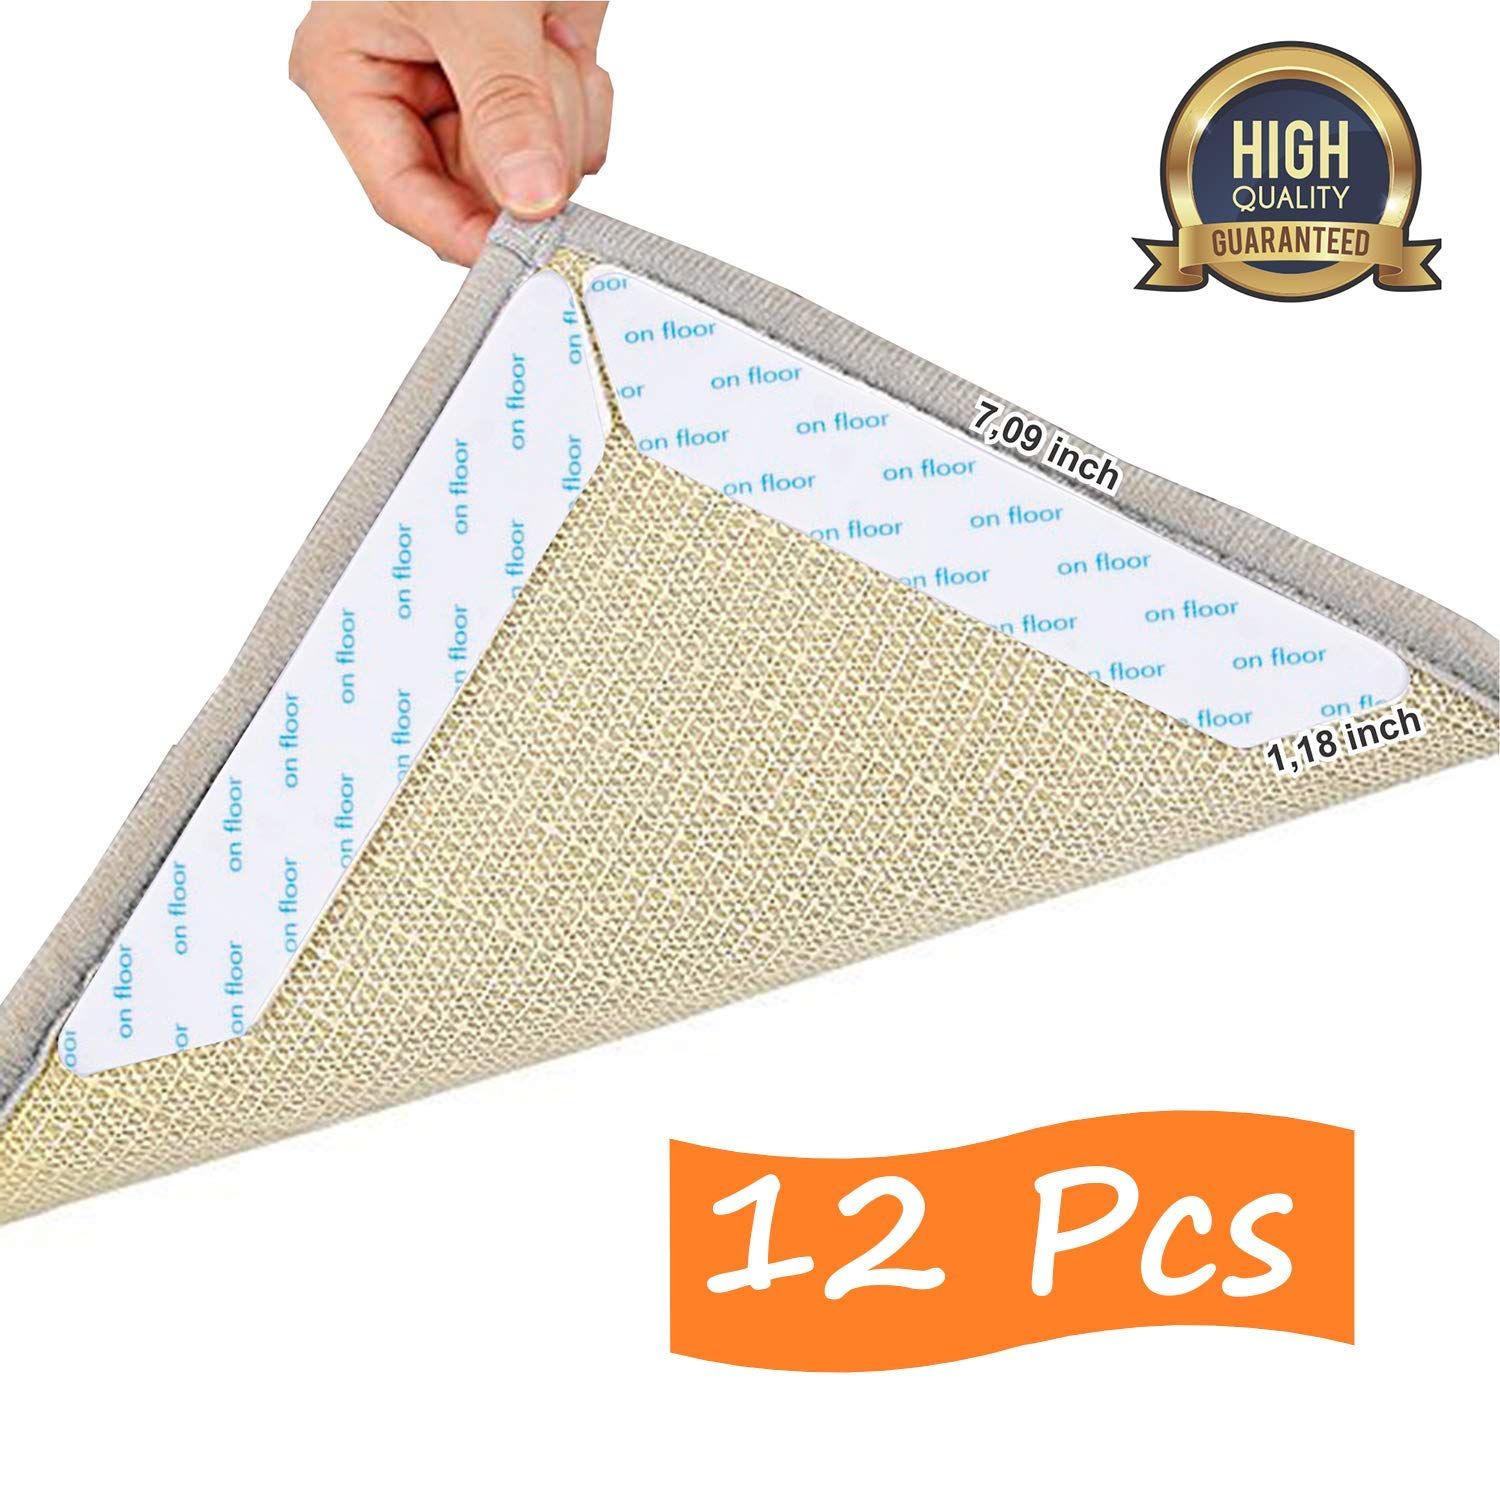 TO-PRIZES Non Slip Rug Gripper Anti Slip Renewable Tape Pad for Hardwood Floors, Carpets. Anti Curling Gripper Area Rugs and Mats. Anti Skid Grip Keeps Carpet and Mat Corners Flat to The Floor 12 Pcs